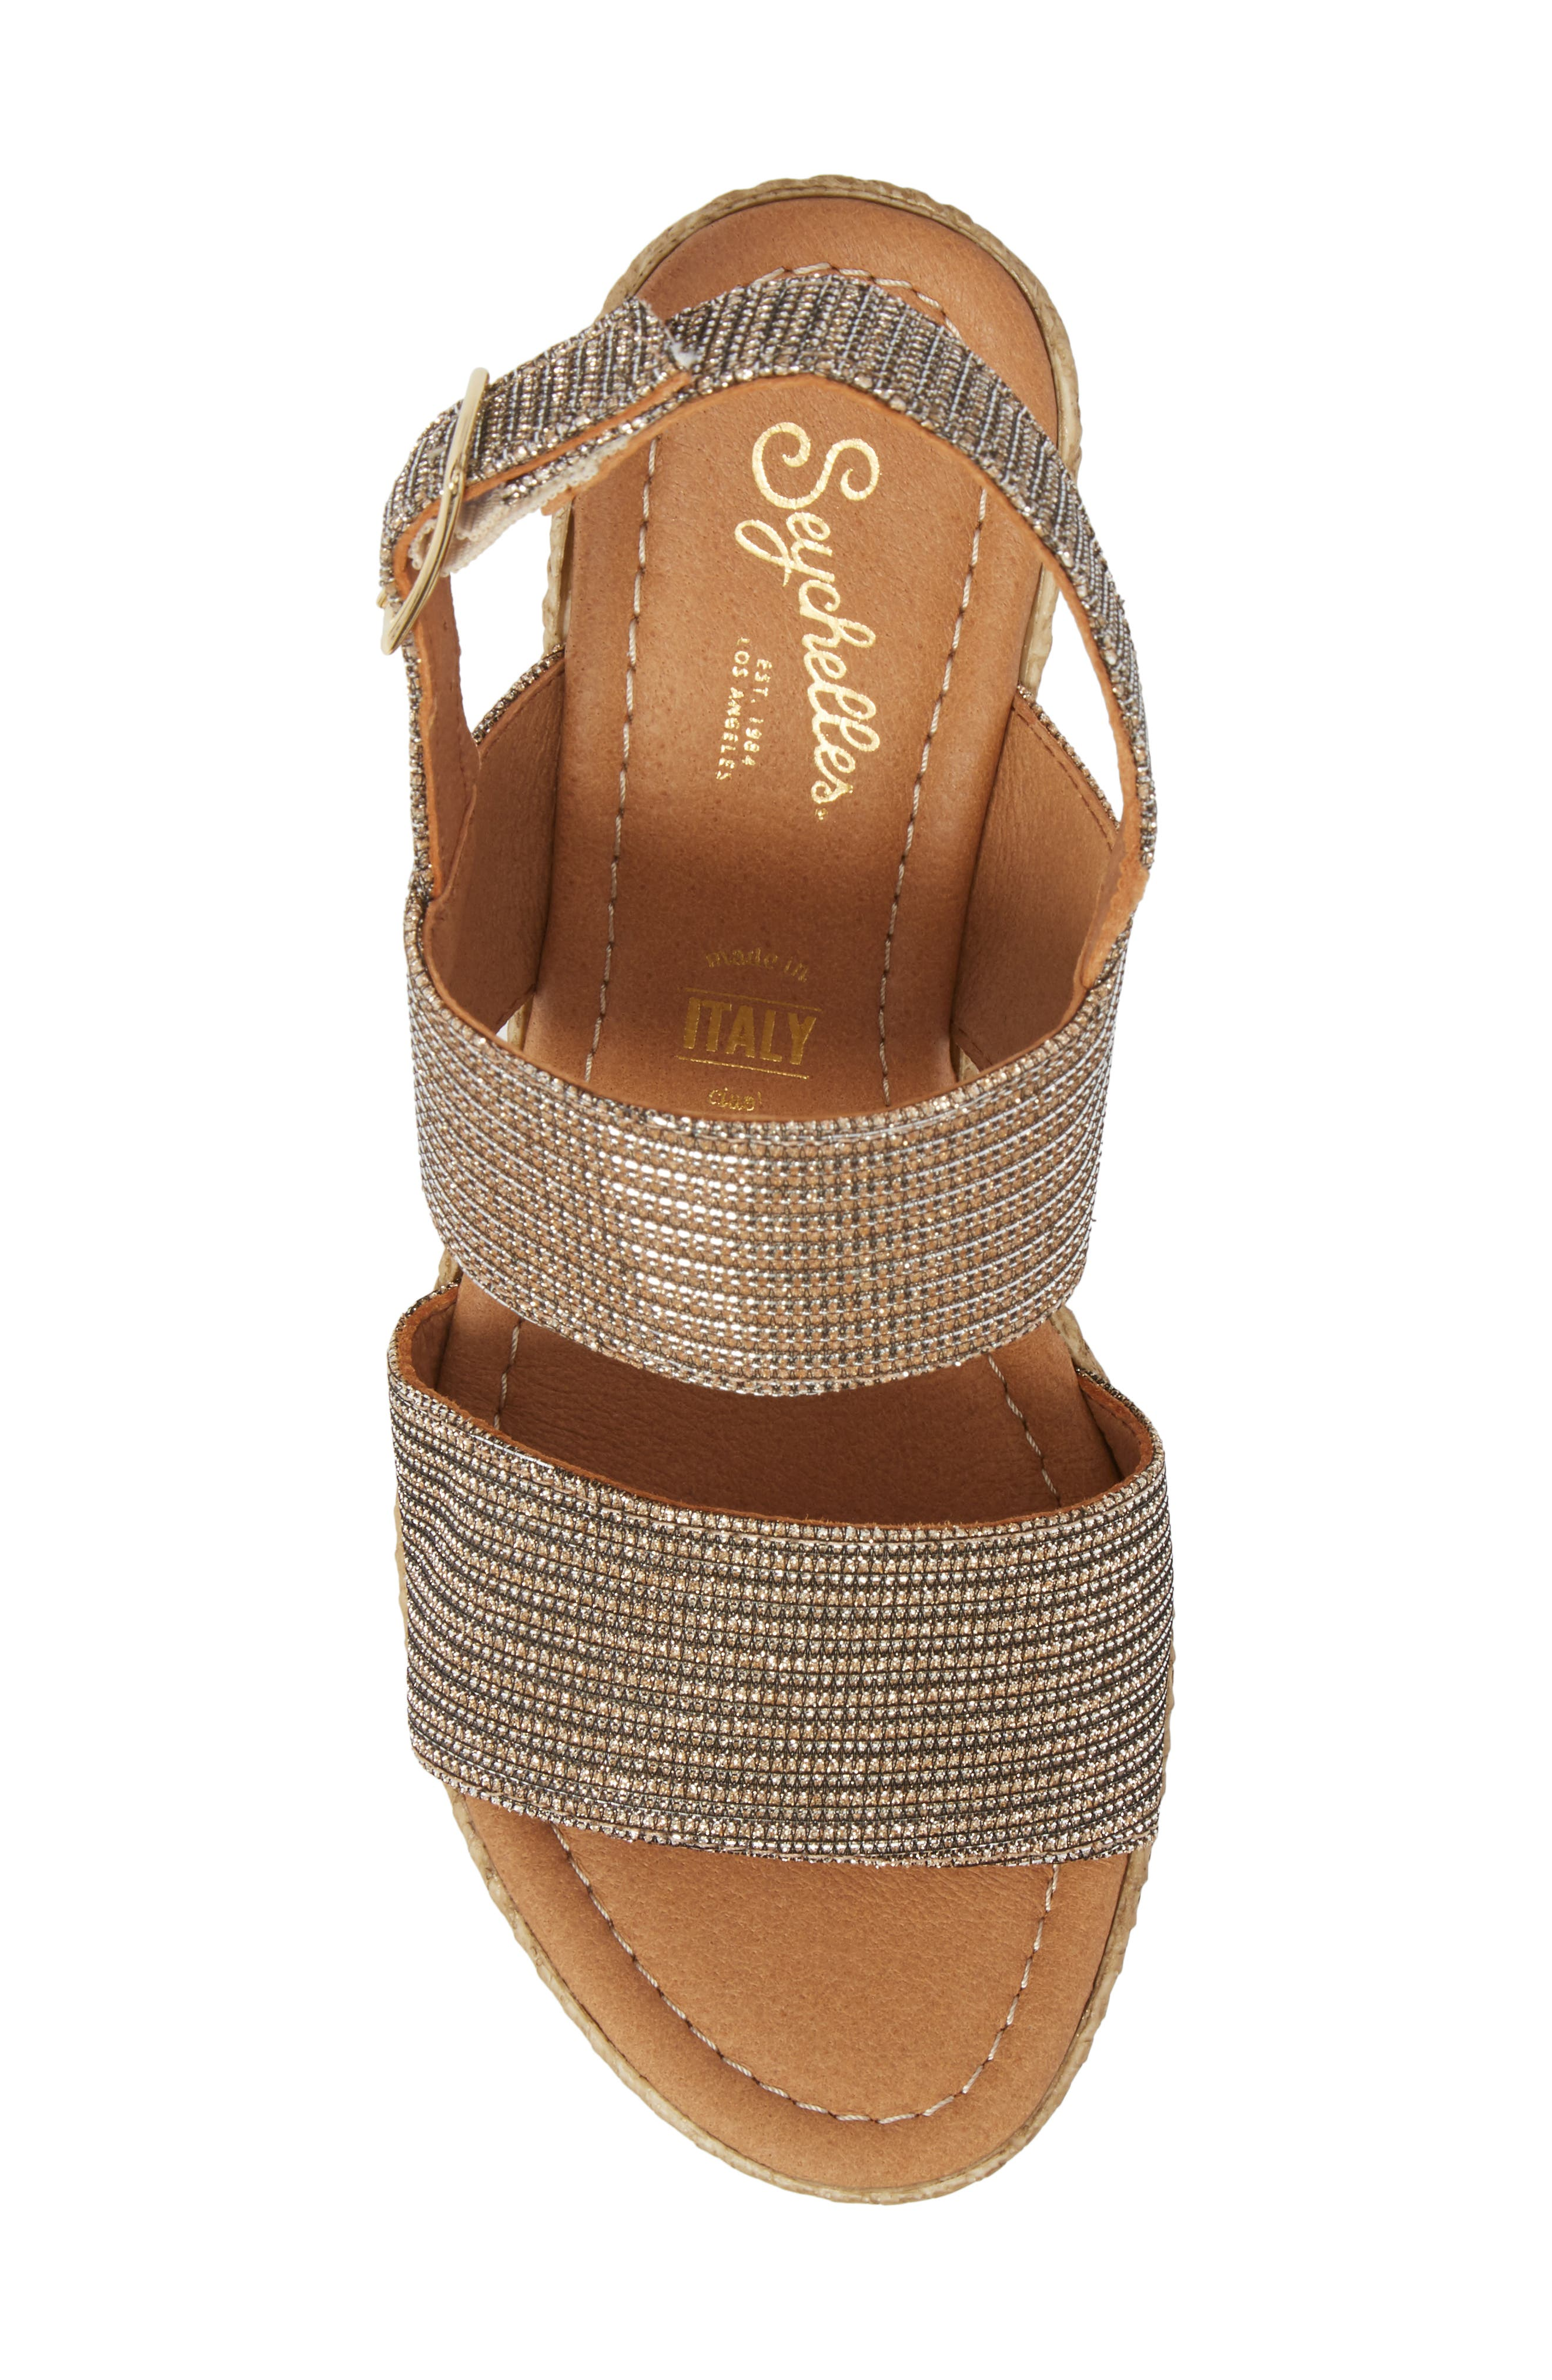 Downtime Wedge Sandal,                             Alternate thumbnail 5, color,                             Bronze Metallic Fabric